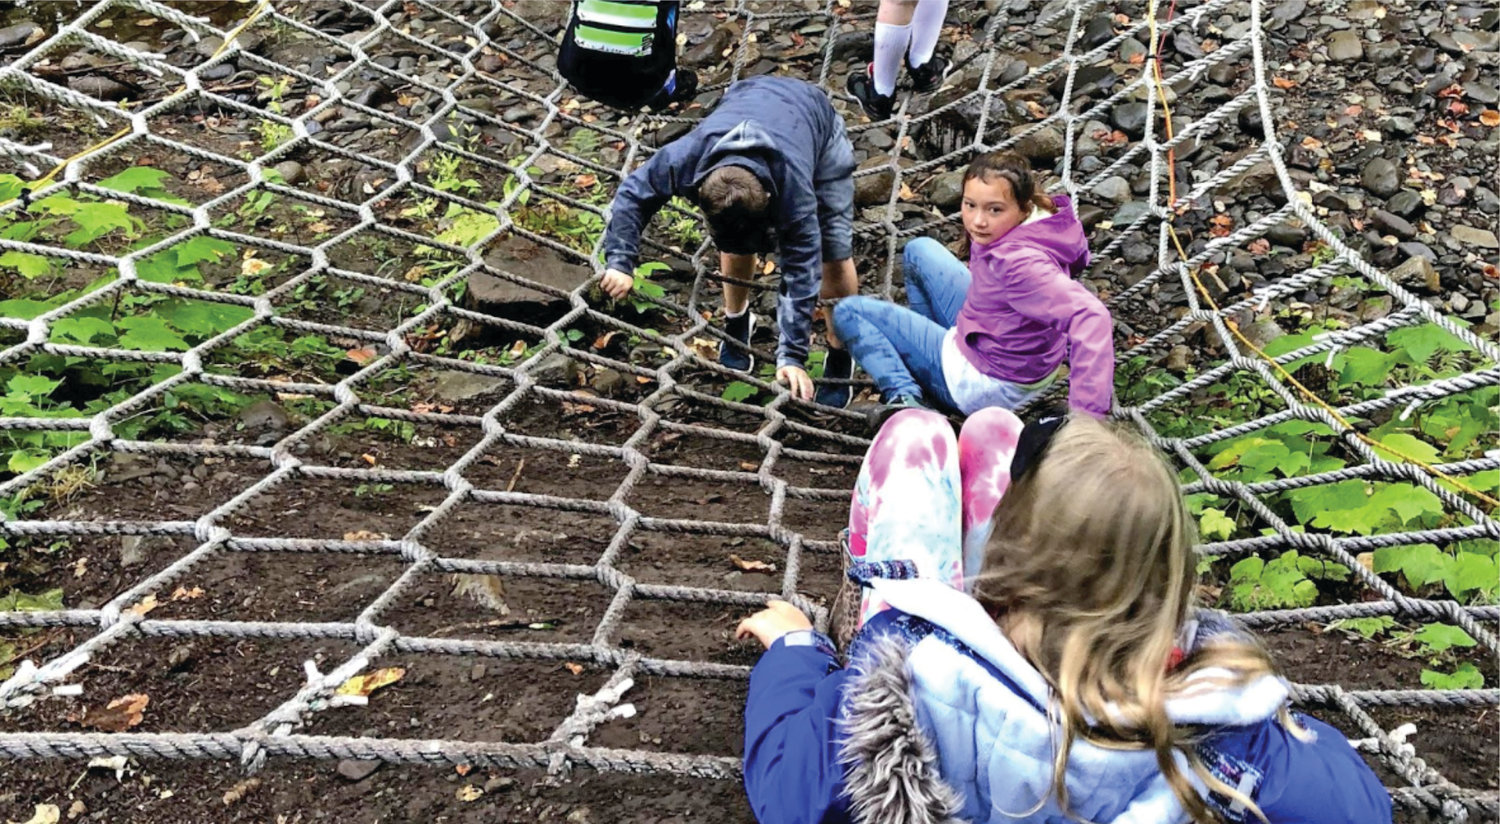 A previous class of Chimacum sixth-graders challenge themselves on a climbing net at Camp Cispus. Visiting the camp has been an annual tradition since about 1986.